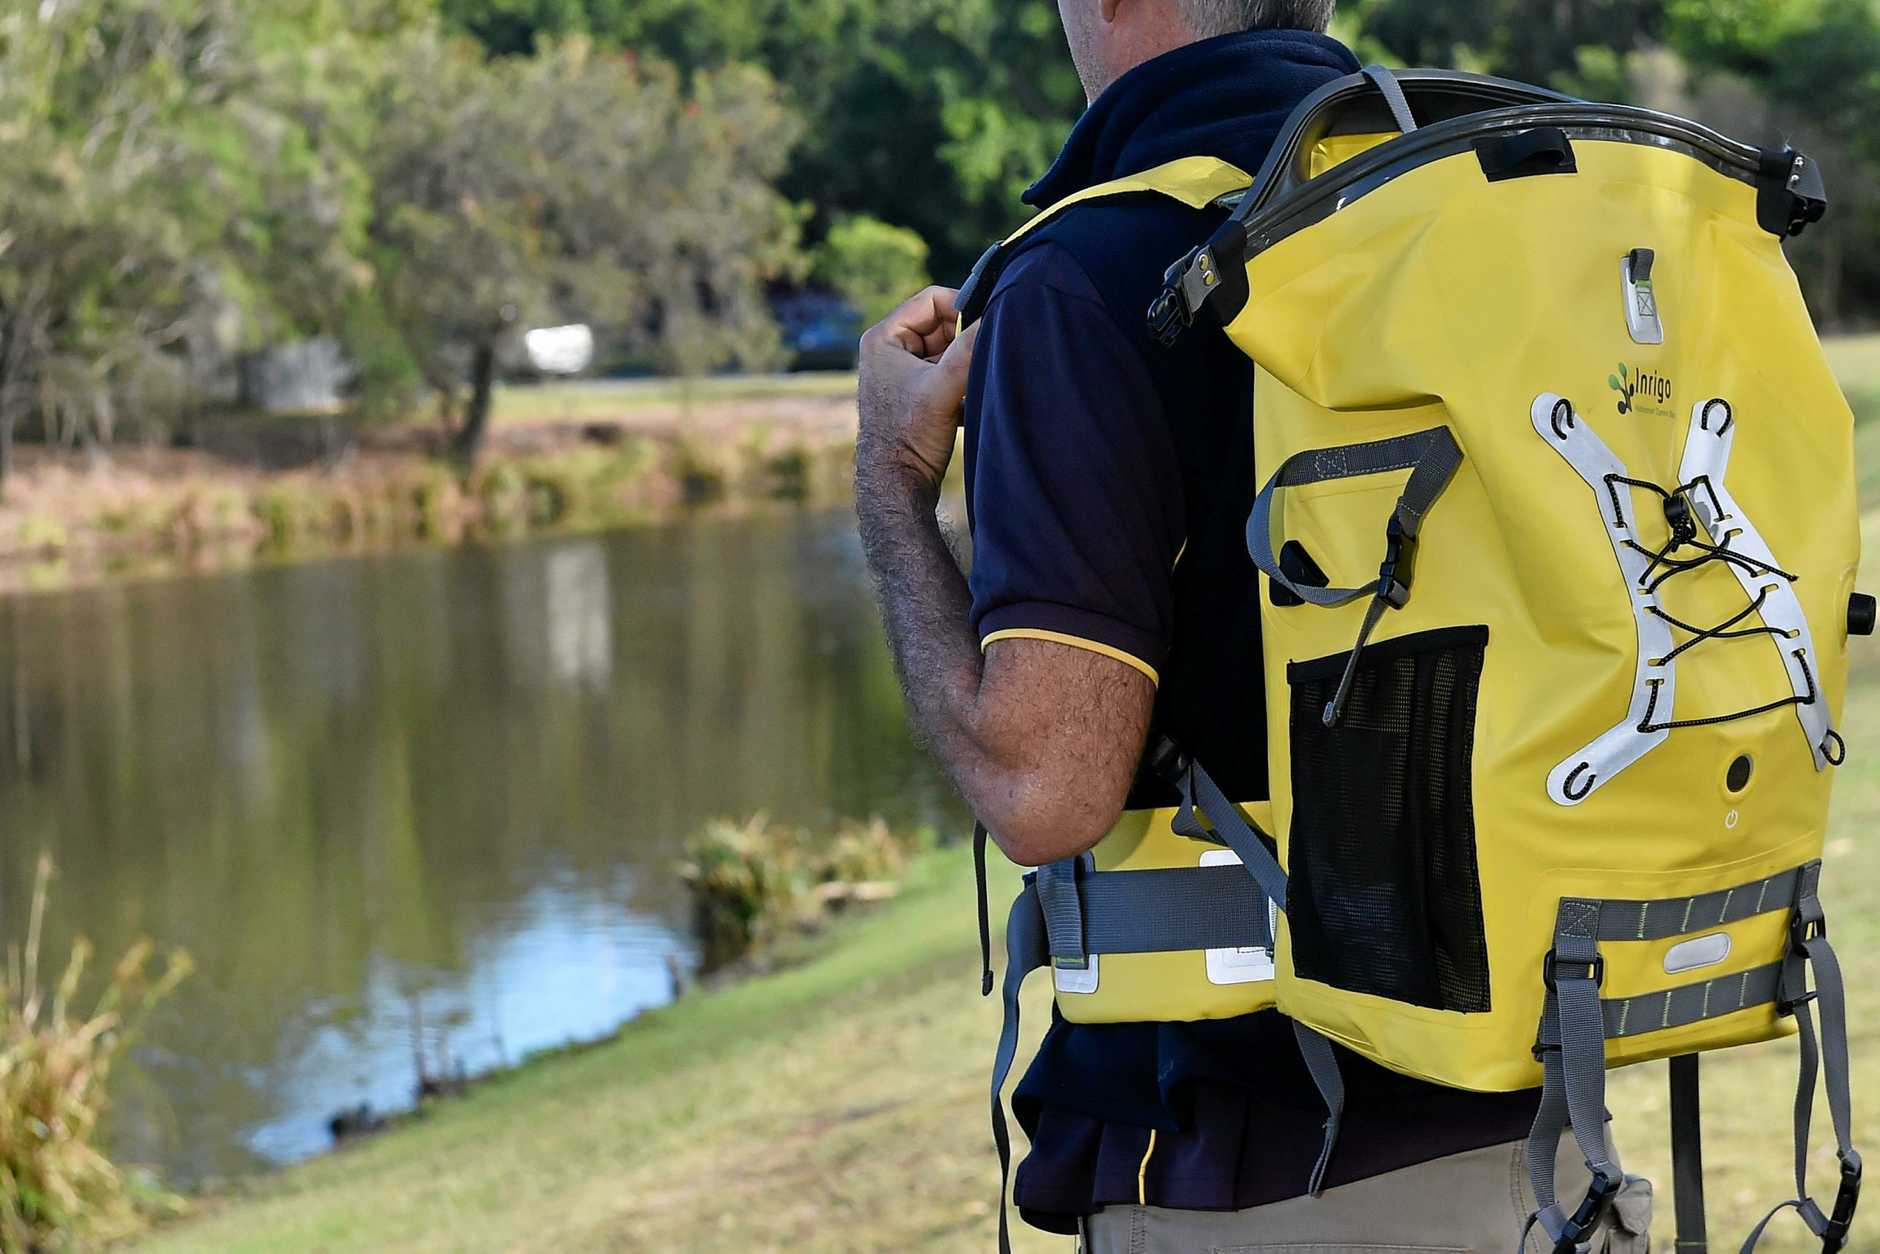 The Inrigo is a waterproof camera backpack that comes with an integrated Bluetooth humidity monitor that alerts users via smartphone alert if moisture is detected inside.